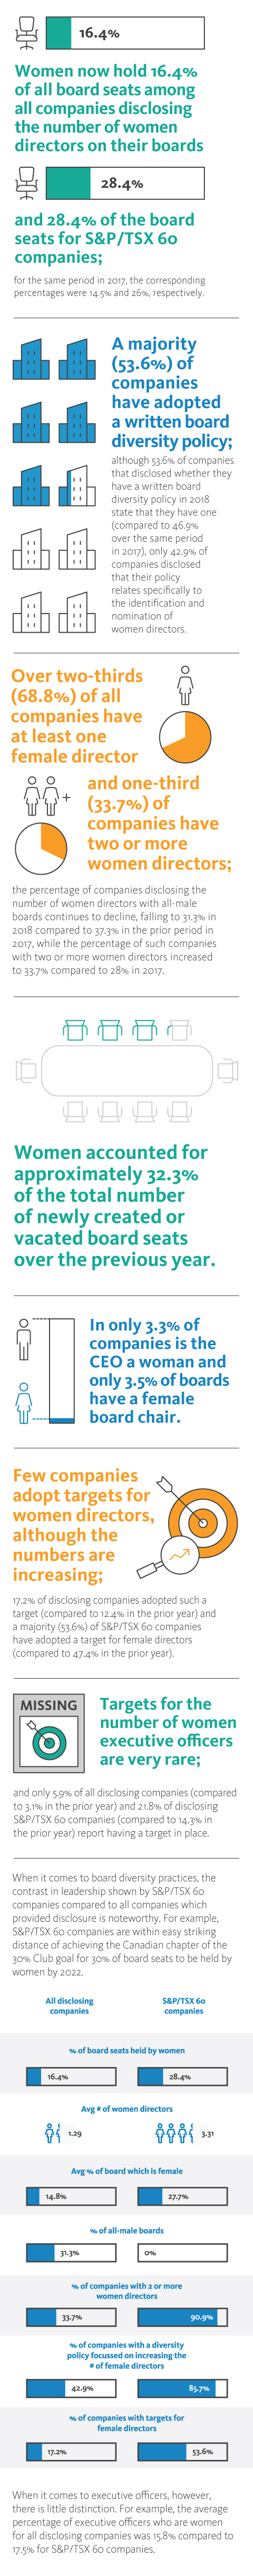 Gender diversity on corporate boards in Canada